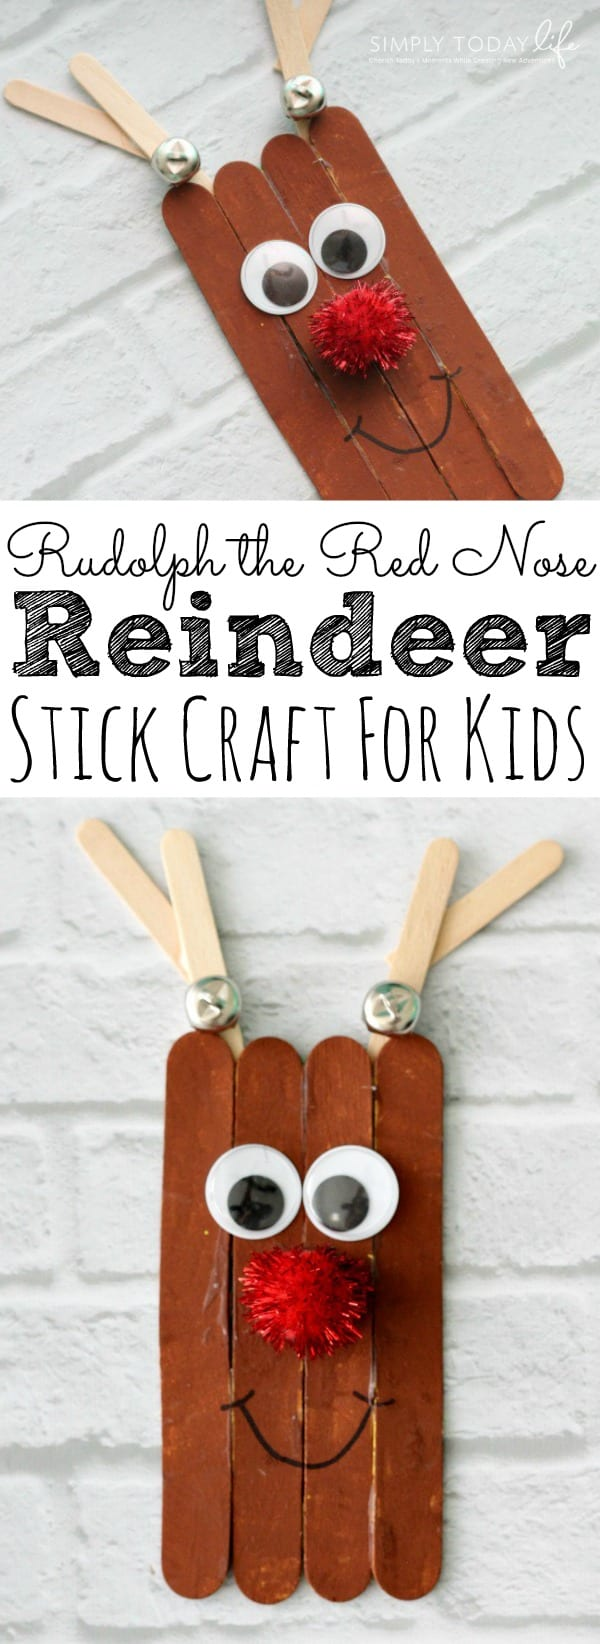 Rudolph The Red Nose Reindeer Craft